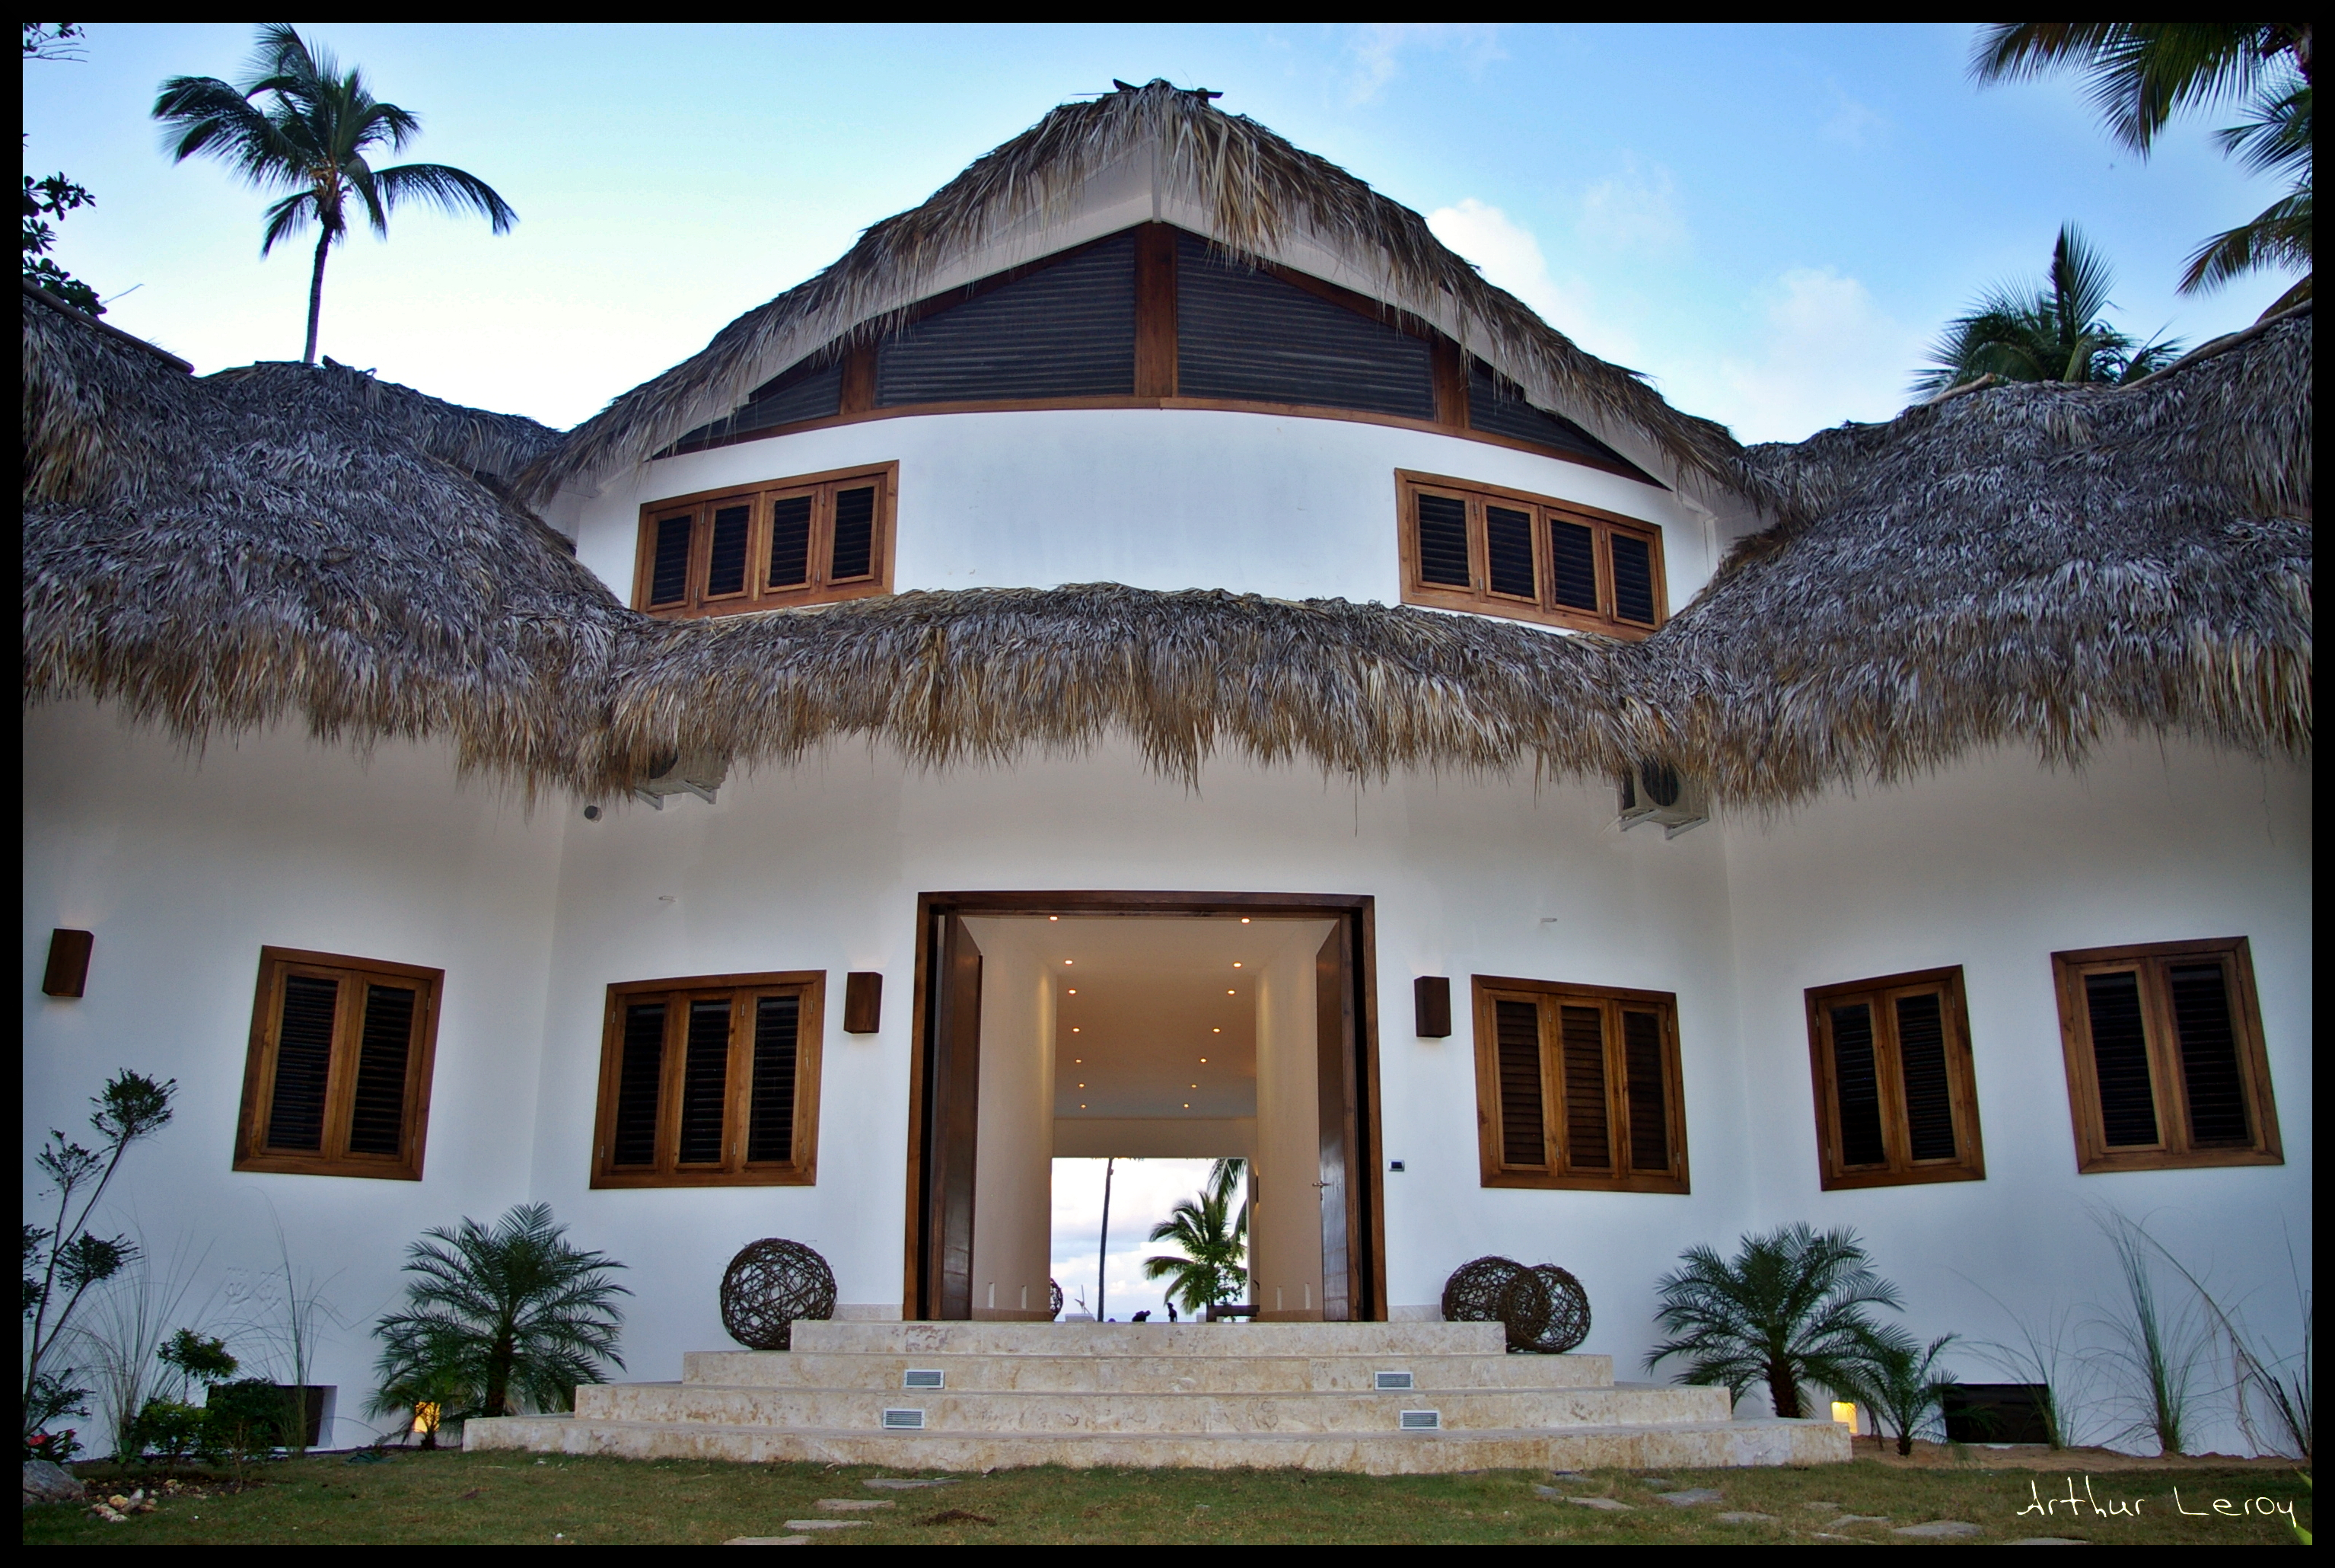 RENTAL VILLA : OCEAN LODGE : 11 BED BEACHFRONT VILLA - RA580LT